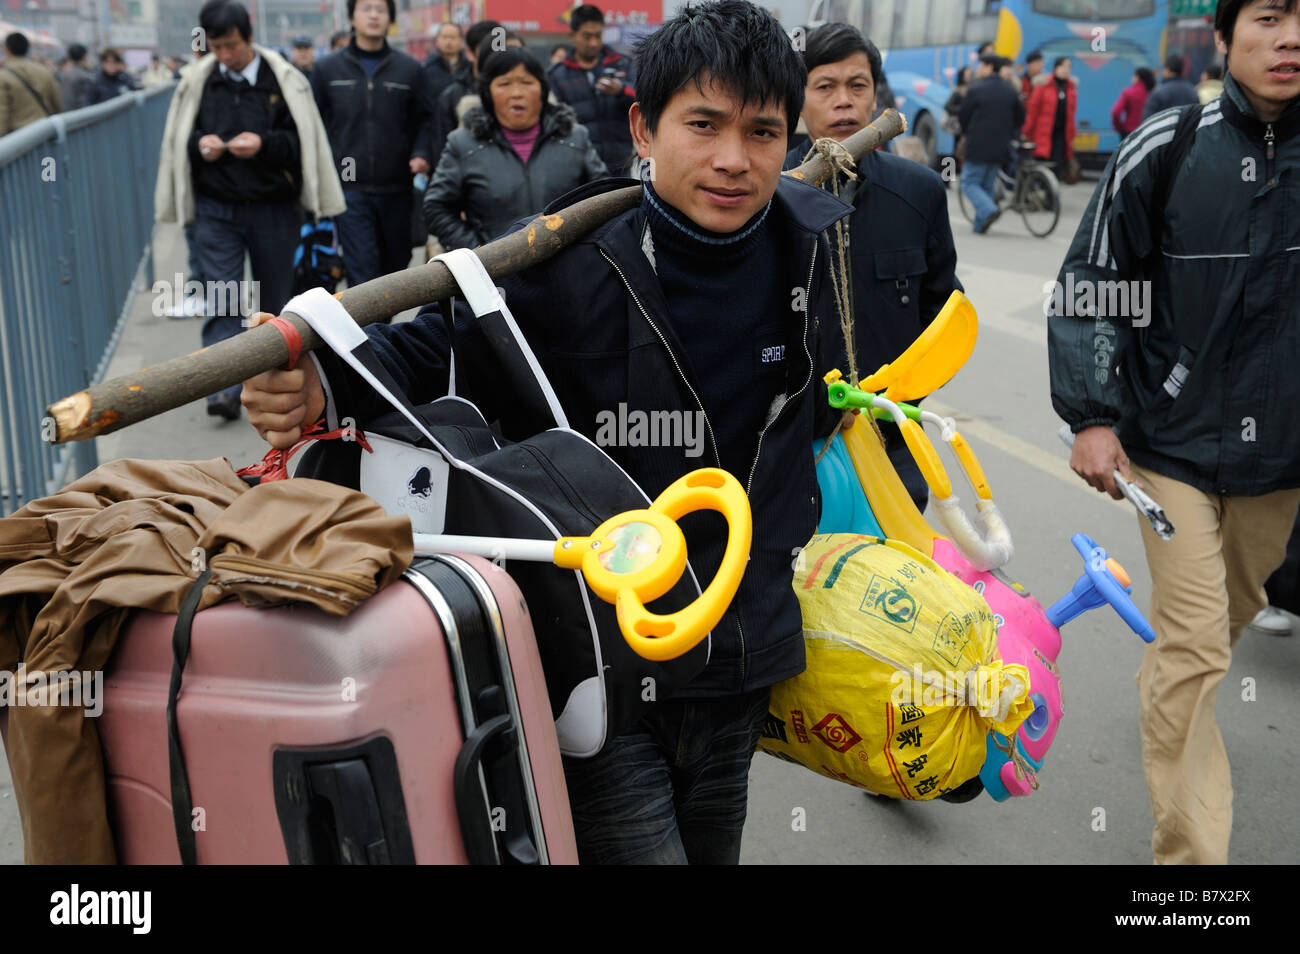 Migrant workers carry their luggage leaving the train station of Nanchang, Jiangxi, China. 05-Feb-2009 - Stock Image